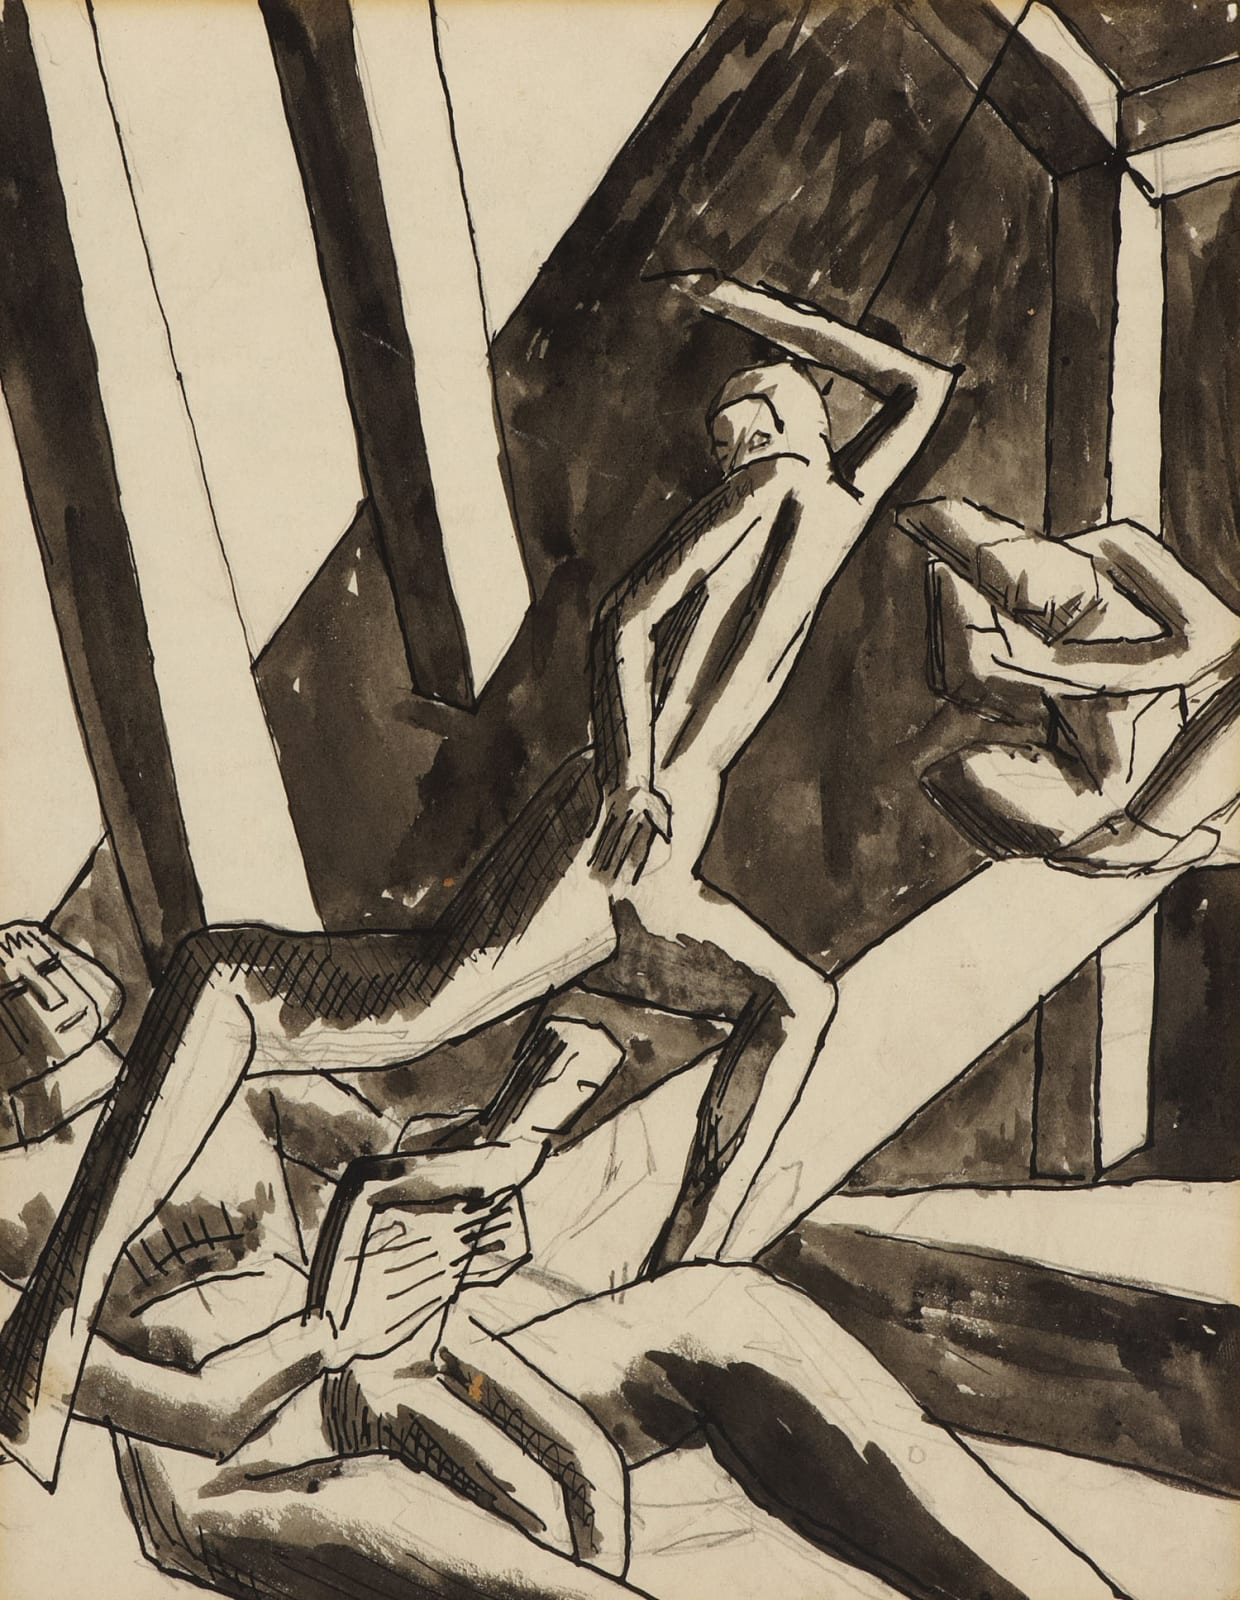 David Bomberg (1890-1957) The Family (Study for Ghetto Theatre II) 1919 Pencil, ink and wash on paper 25.4 x 19.7 cm Ben Uri Collection © David Bomberg estate